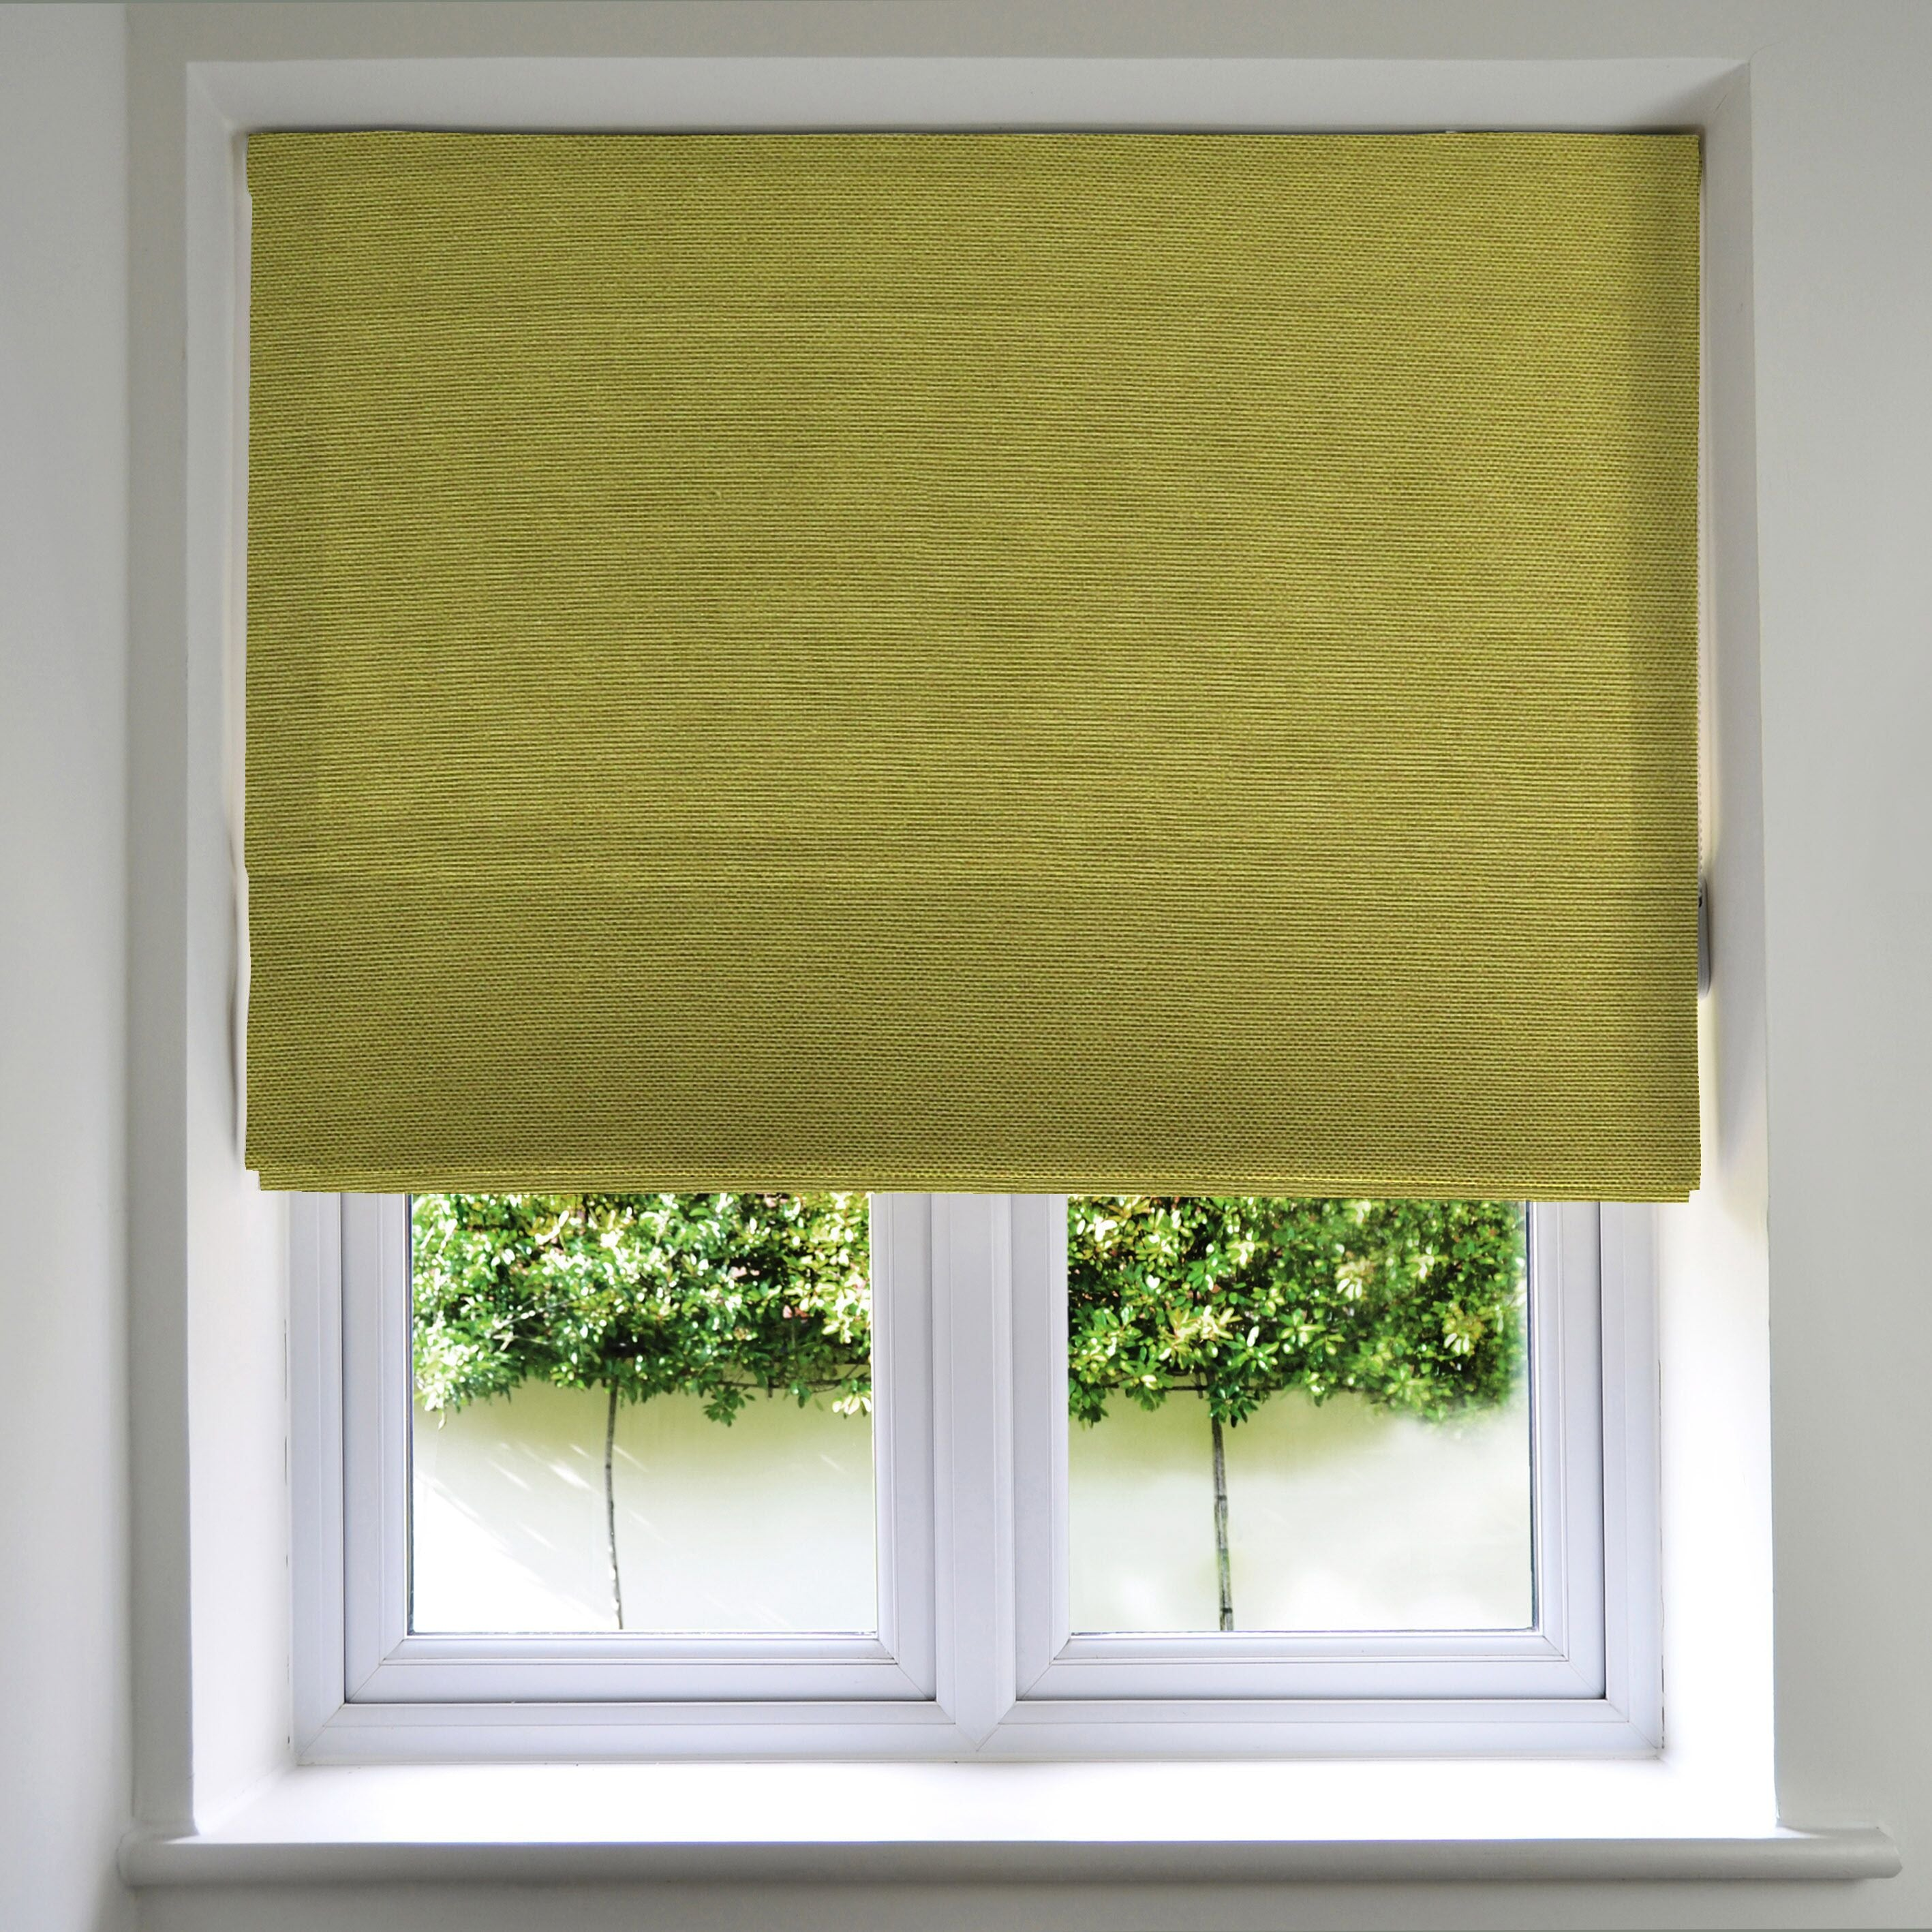 McAlister Textiles Panama Lime Green Roman Blind Roman Blinds Standard Lining 130cm x 200cm Lime Green